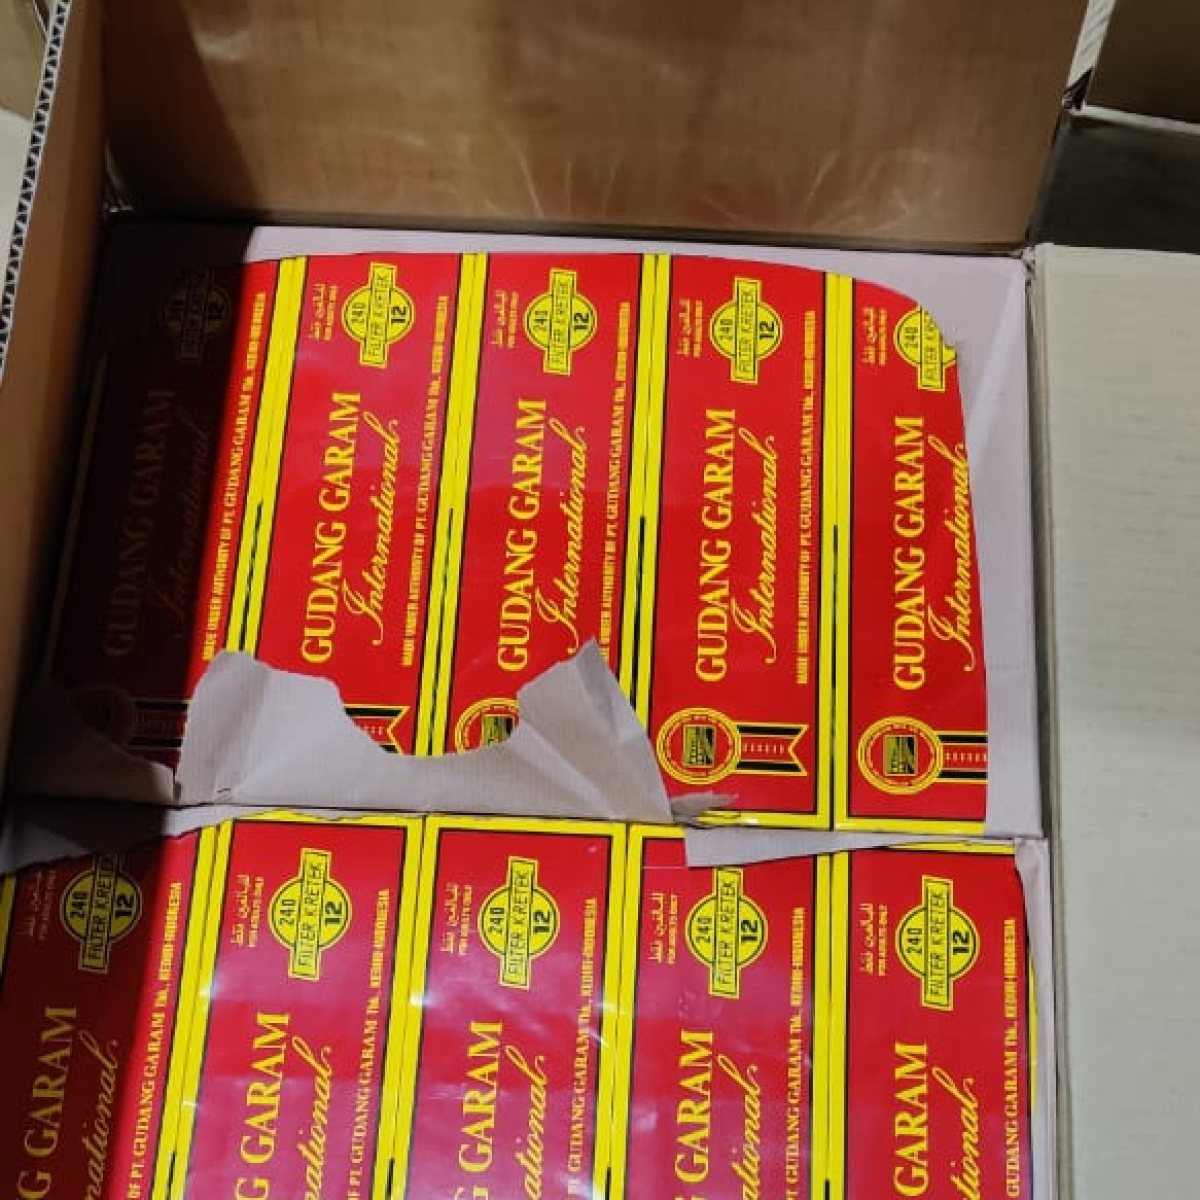 Mumbai: Directorate of Revenue Intelligence seizes foreign cigarettes worth Rs 4.75 crore being smuggled from Dubai